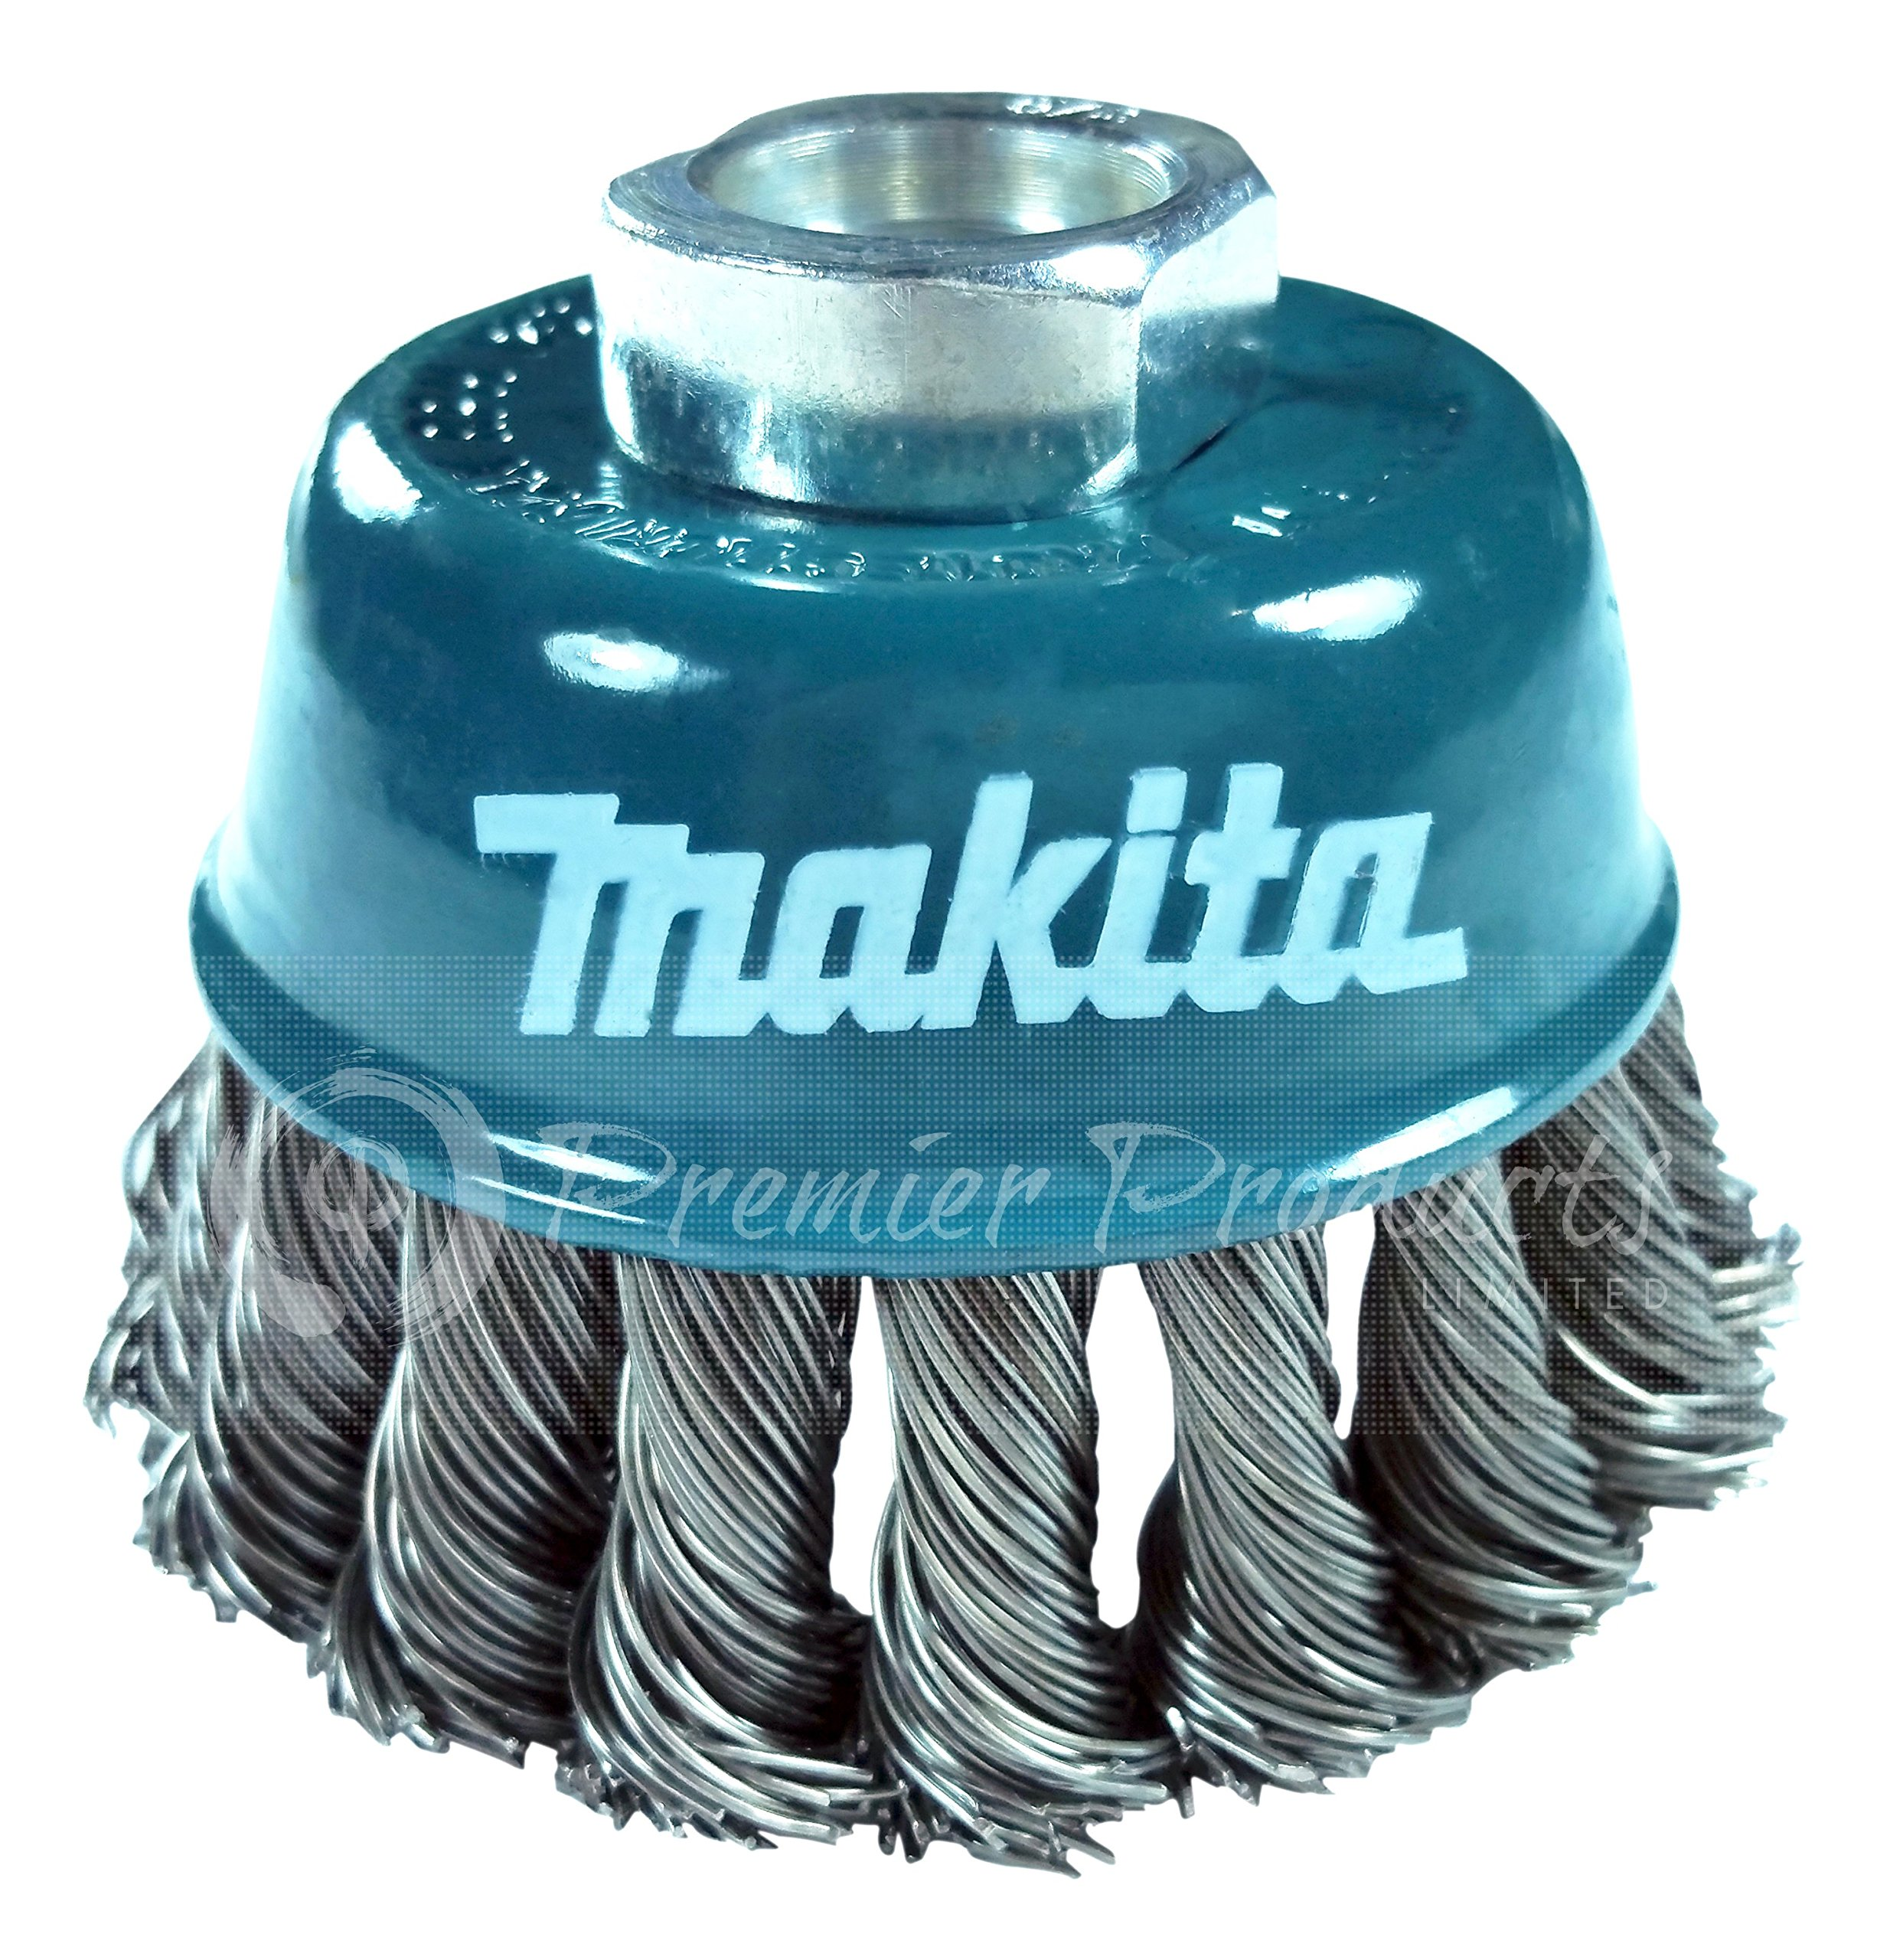 Makita 1 Piece - 3 Inch Knotted Wire Cup Brush For Grinders - Heavy-Duty Conditioning For Metal - 3'' x 5/8-Inch | 11 UNC